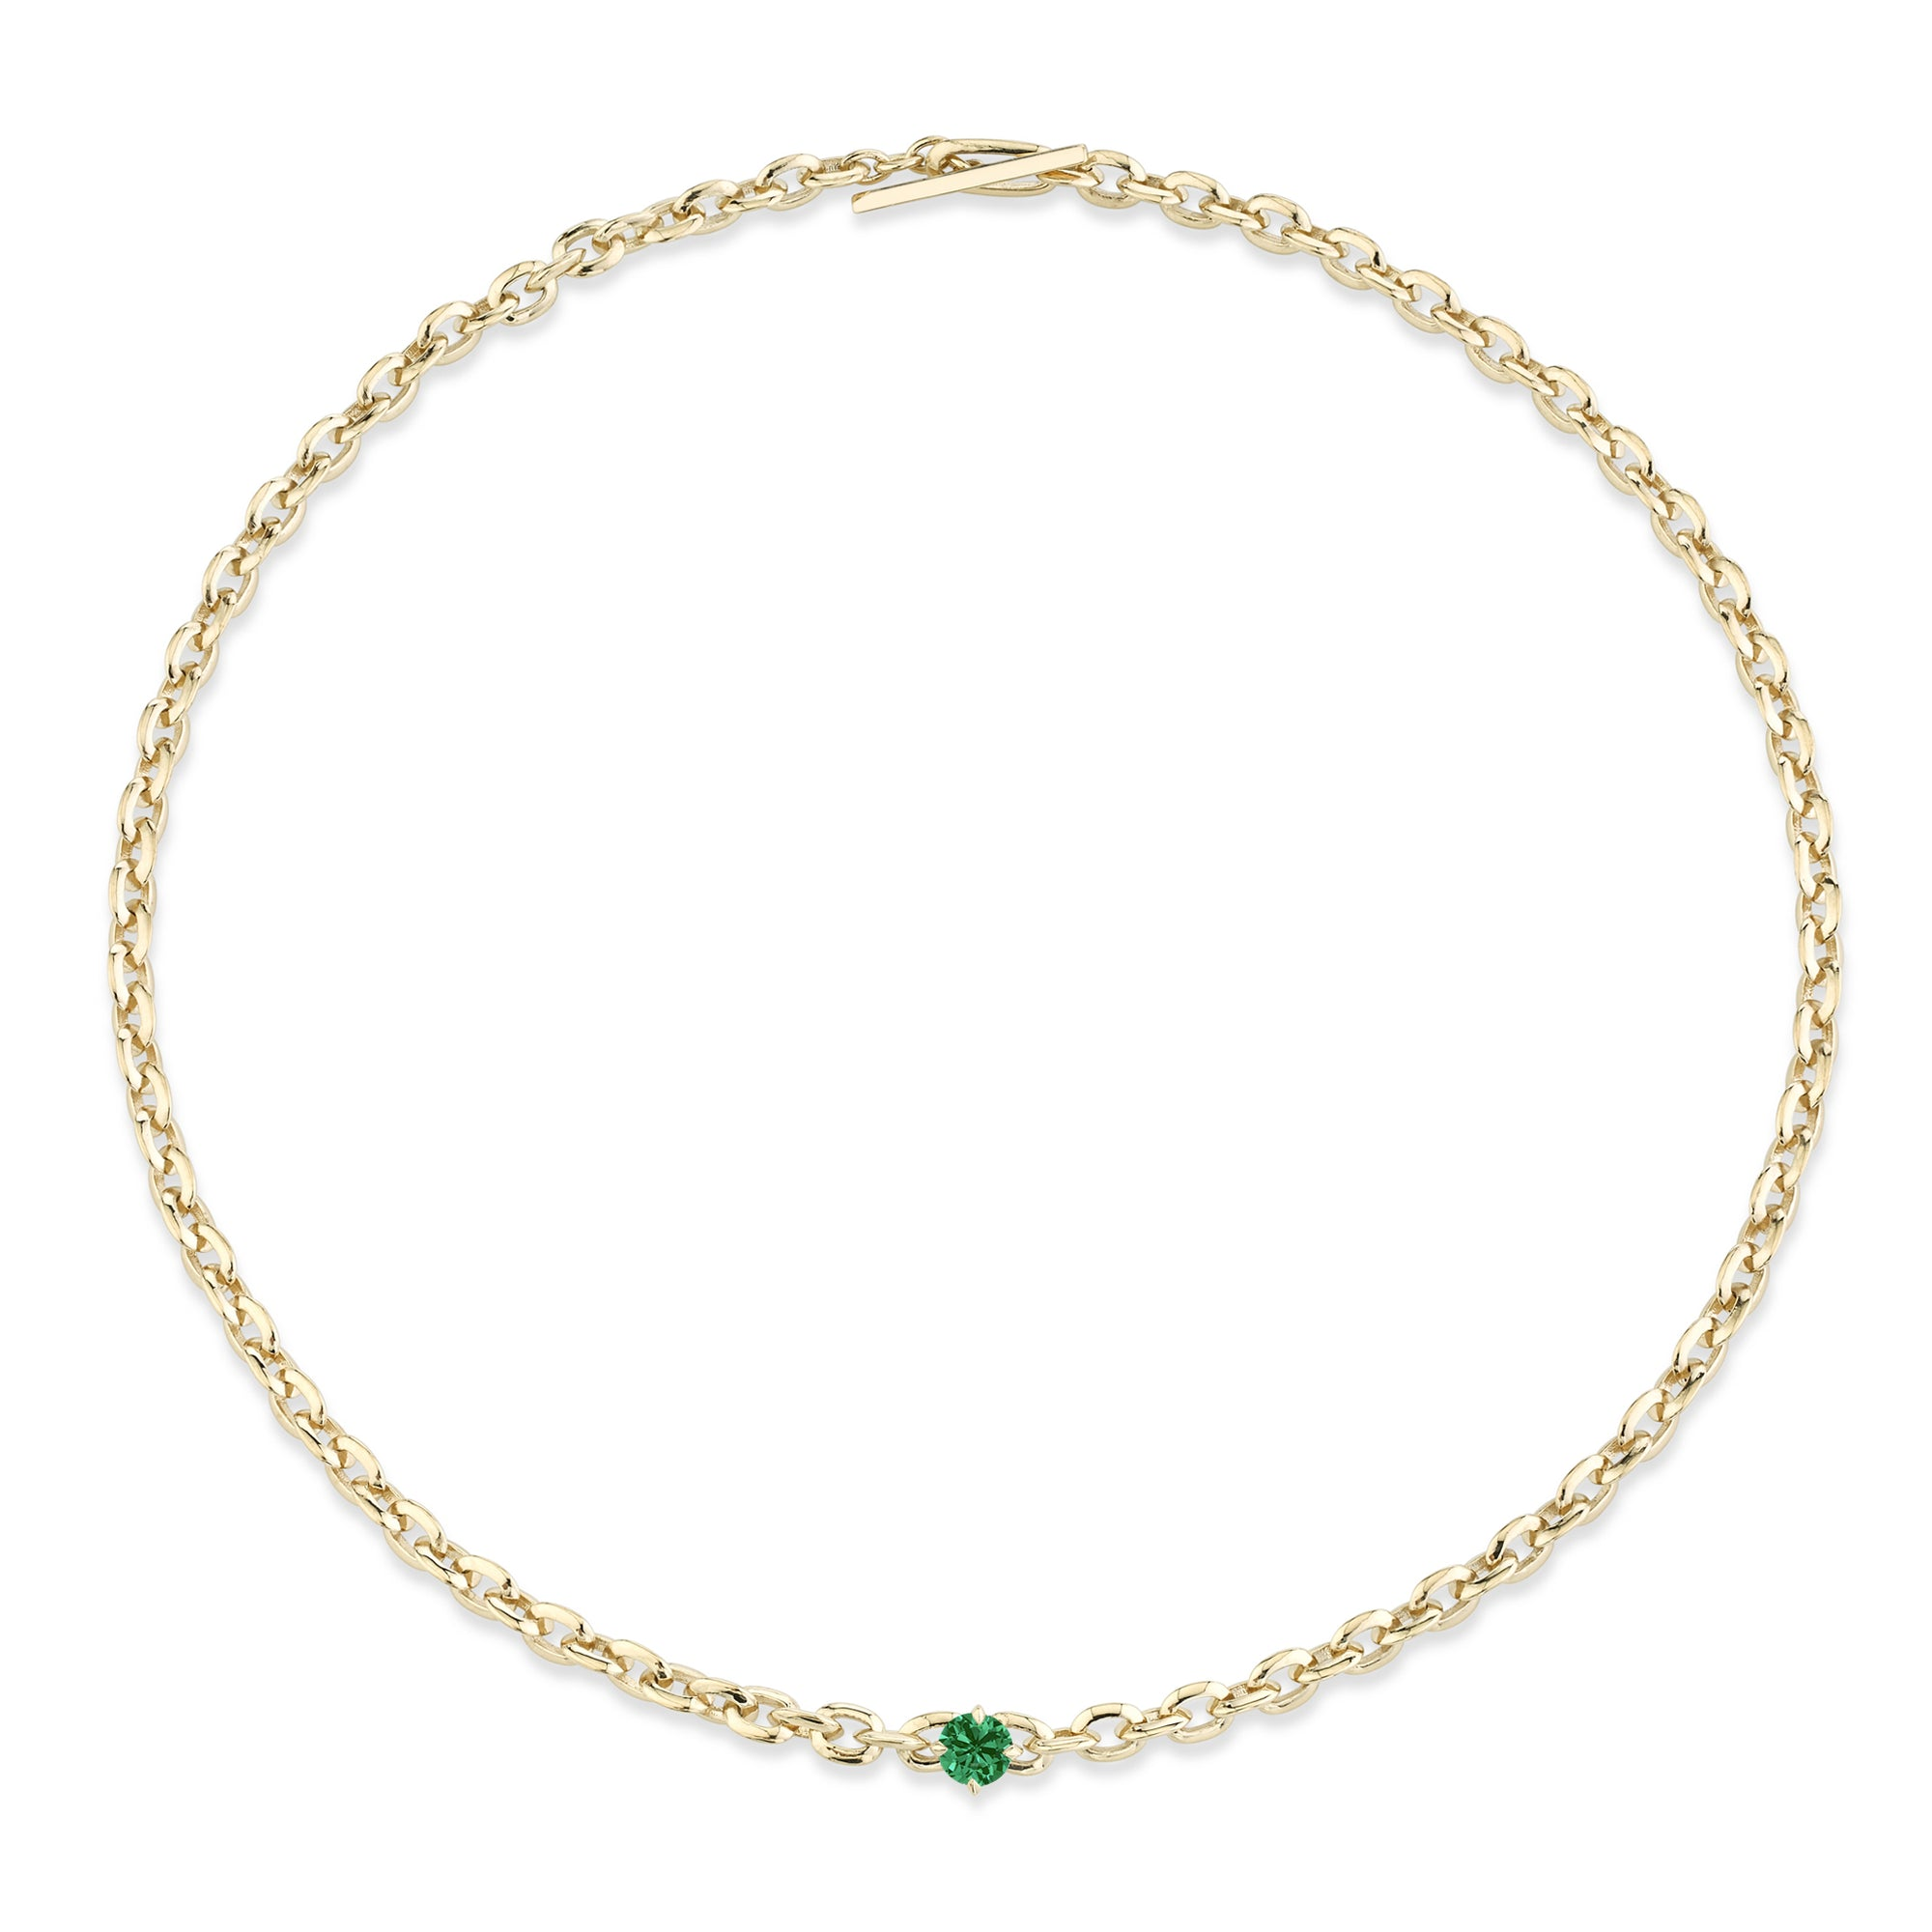 XS Knife Edge Oval Link Necklace with Emerald Center